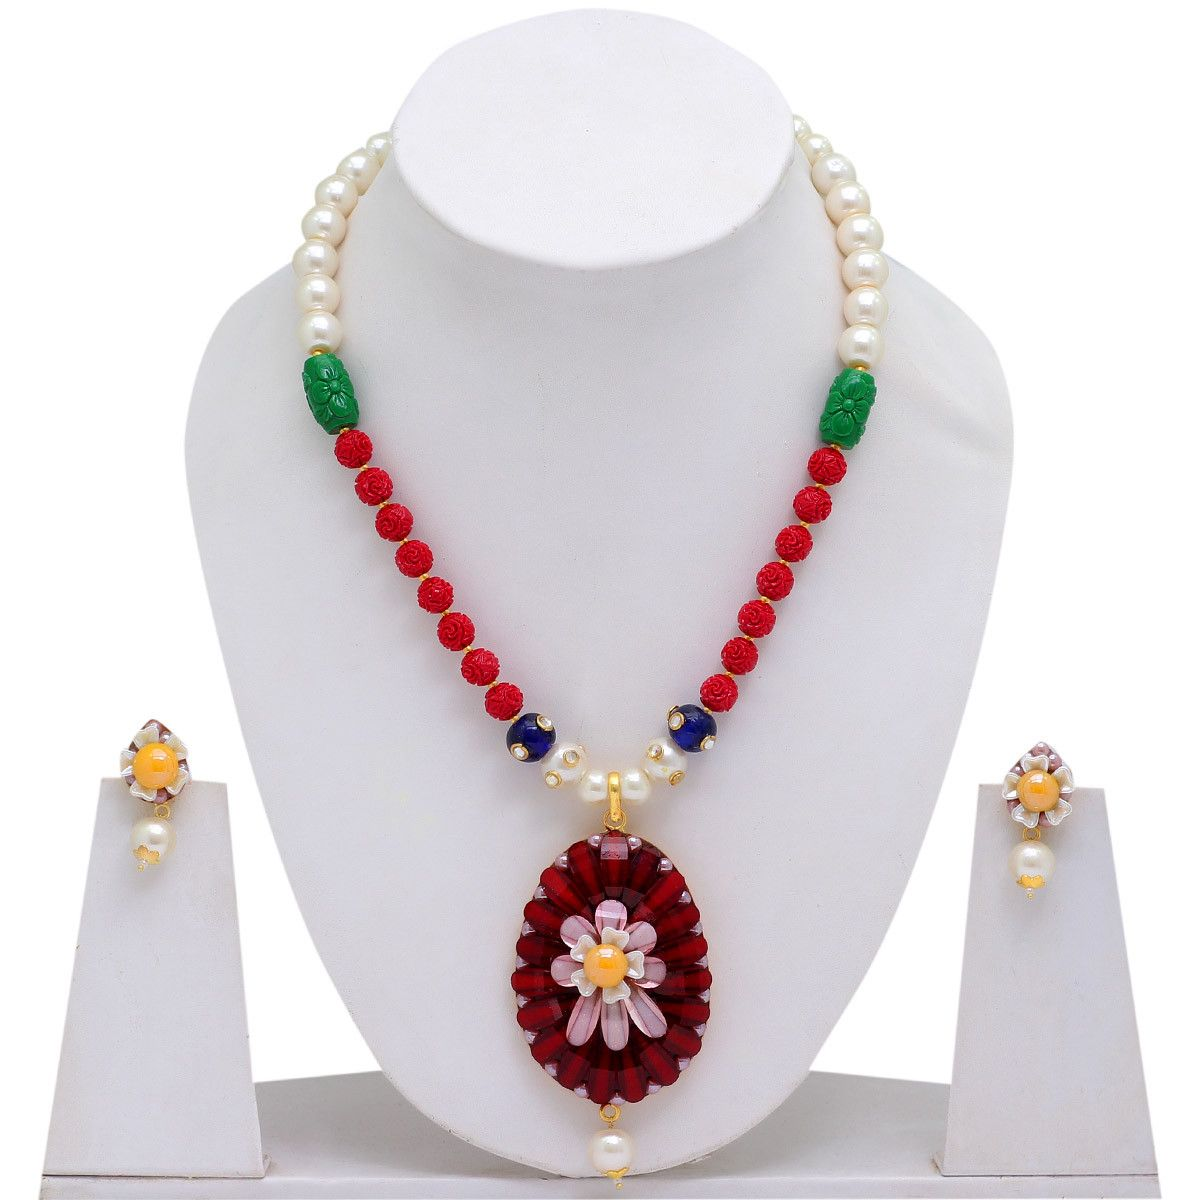 showrooms india jewellery stores bangalore jewellers shops solankeebankers bankers solankee shopping in